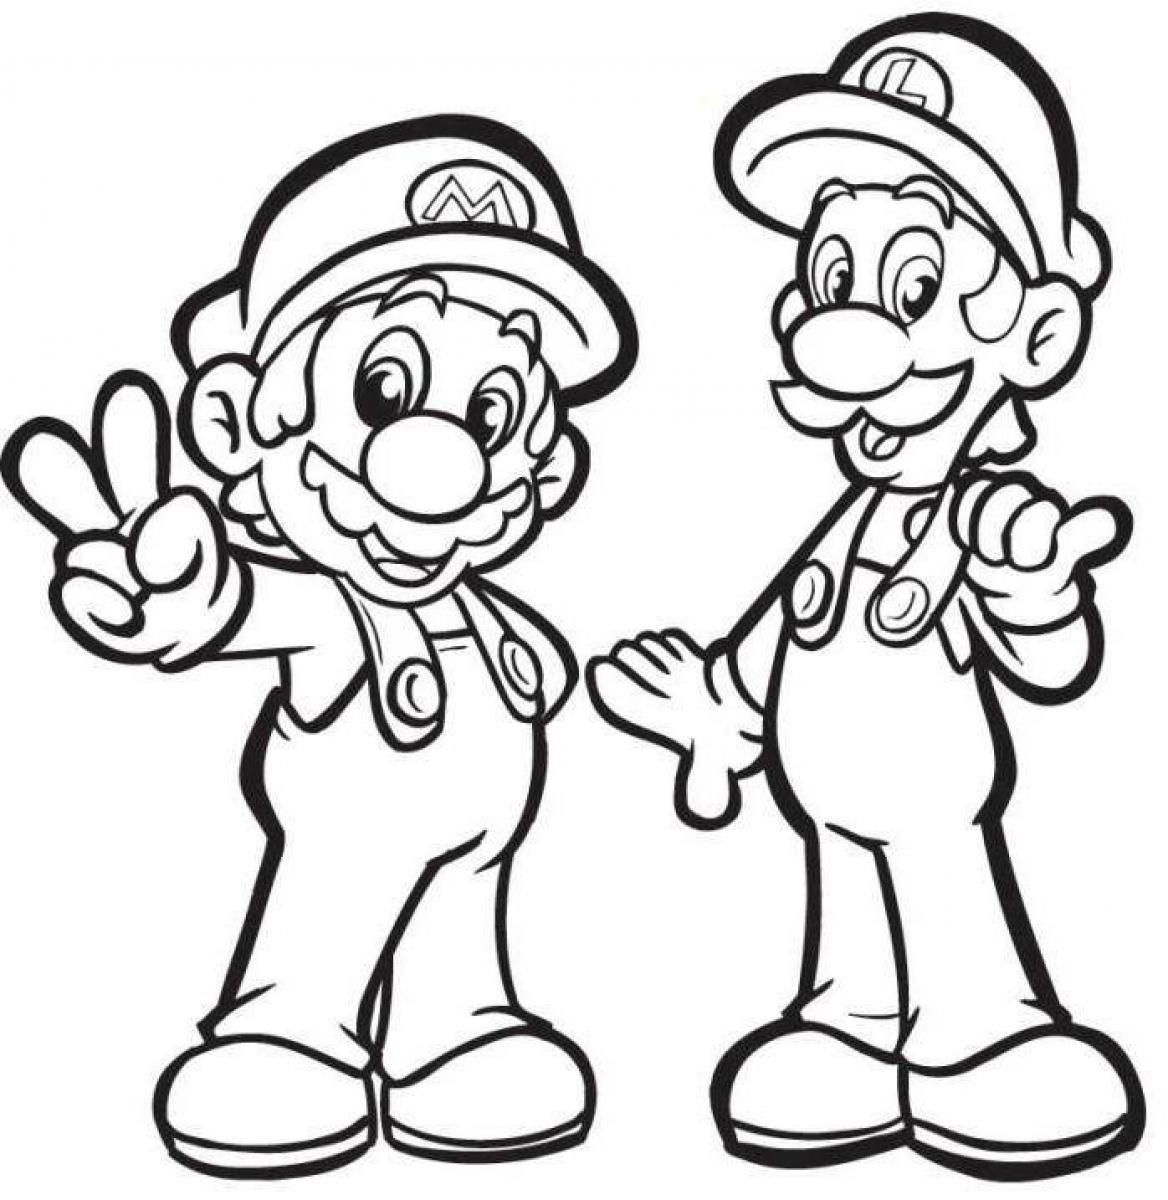 luigi coloring pages, printable luigi coloring pages, free luigi ...